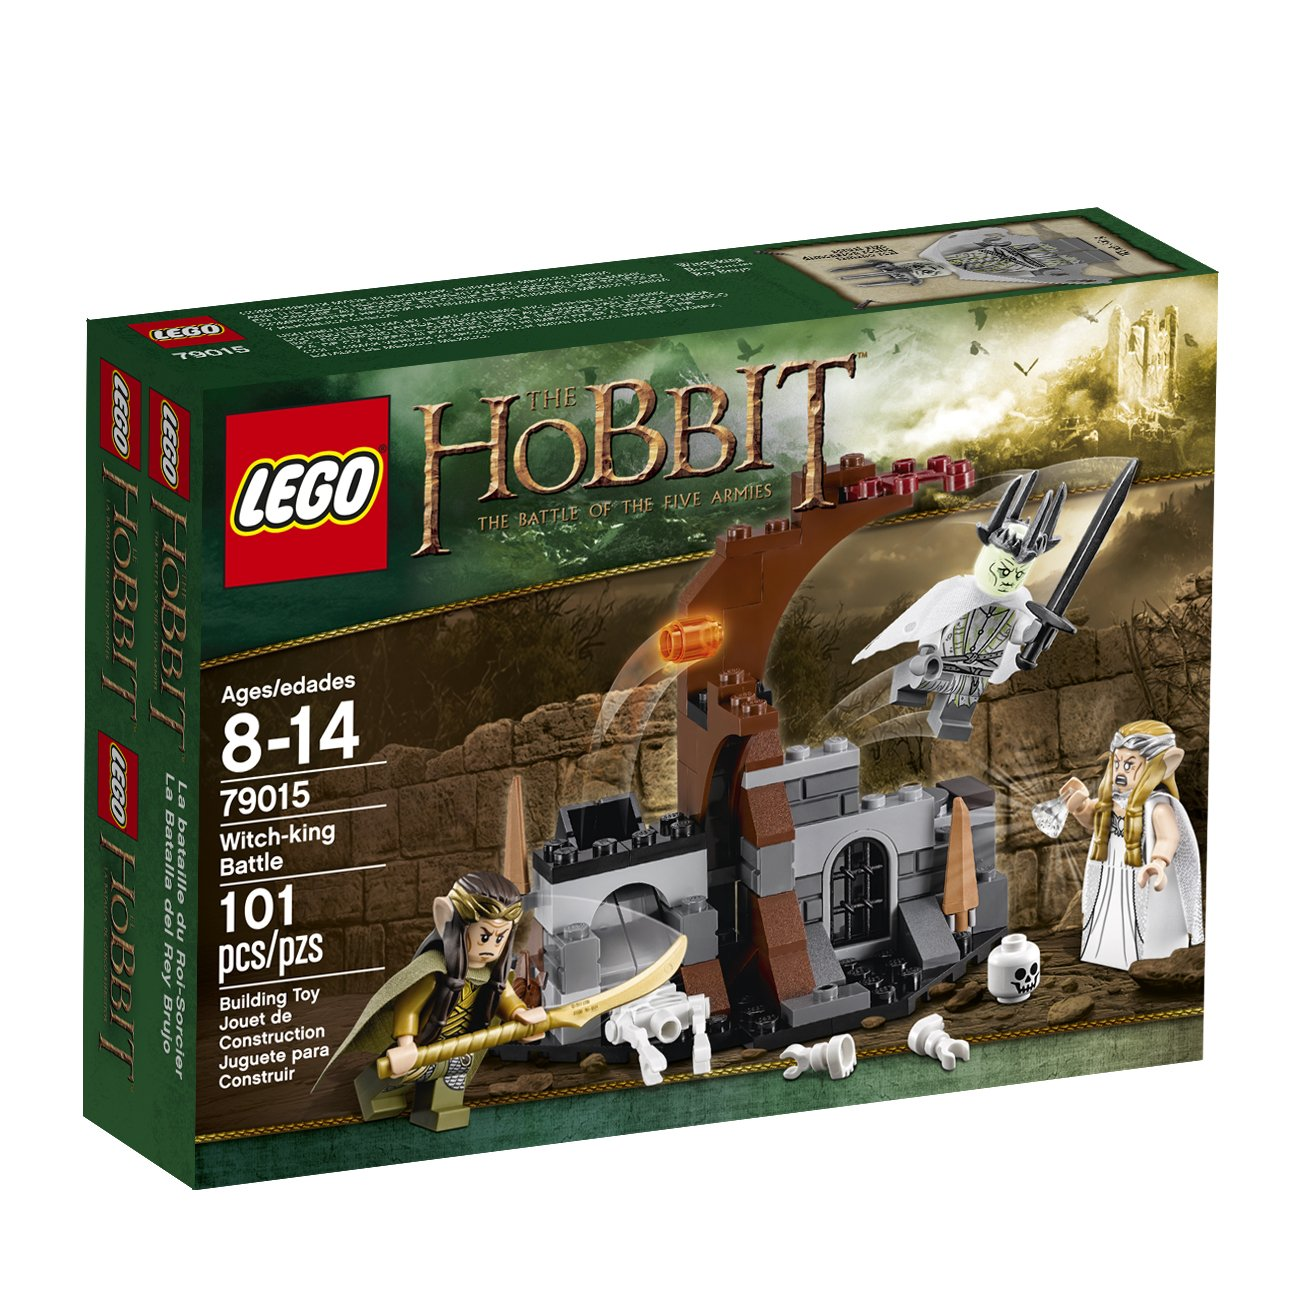 LEGO Hobbit Playset - Witch-king Battle 79015  Includes 3 minifigures with assorted weapons and accessories: Witch-king, Galadriel and Elrond.